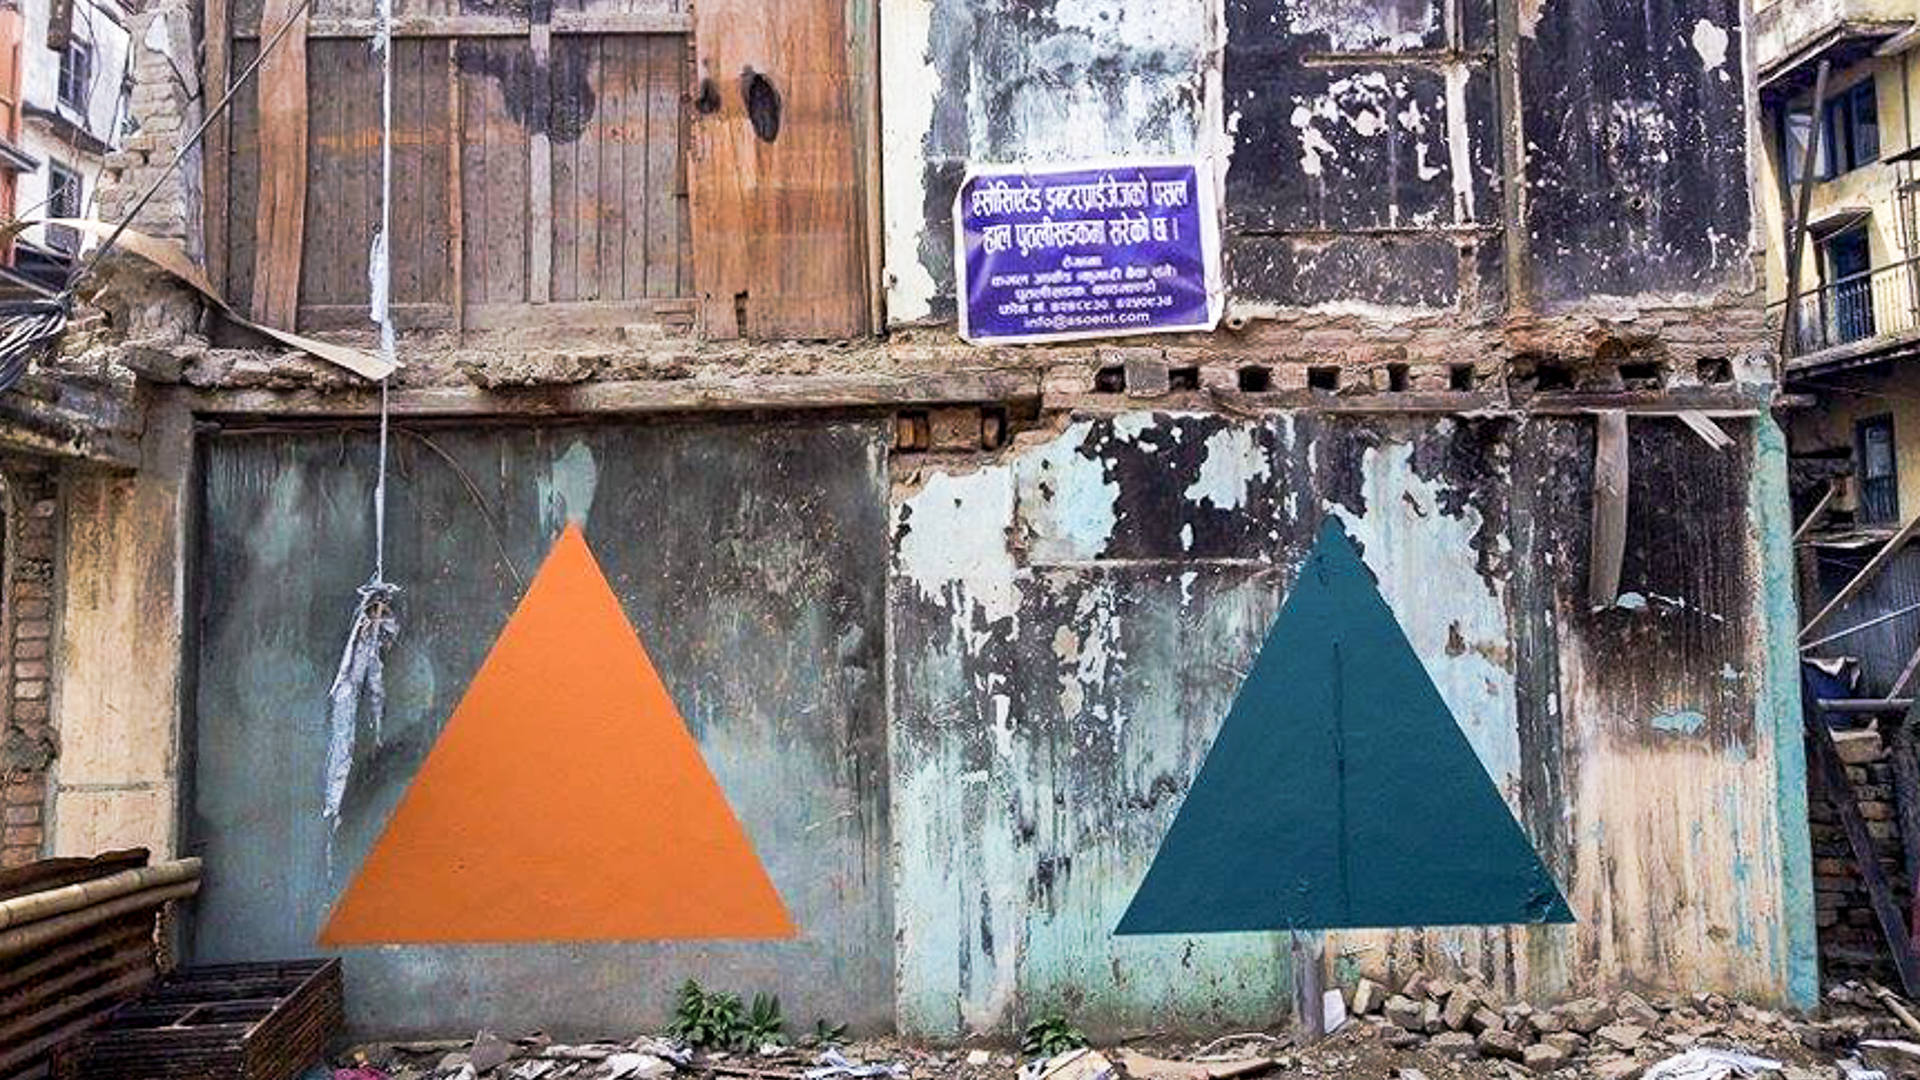 Triangolism in Kathmandu. Italian street artist Riccardo Ten Colombo painted equilateral triangles on buildings brought down by the earthquake. Image by Sunil Sharma. Used with permission.